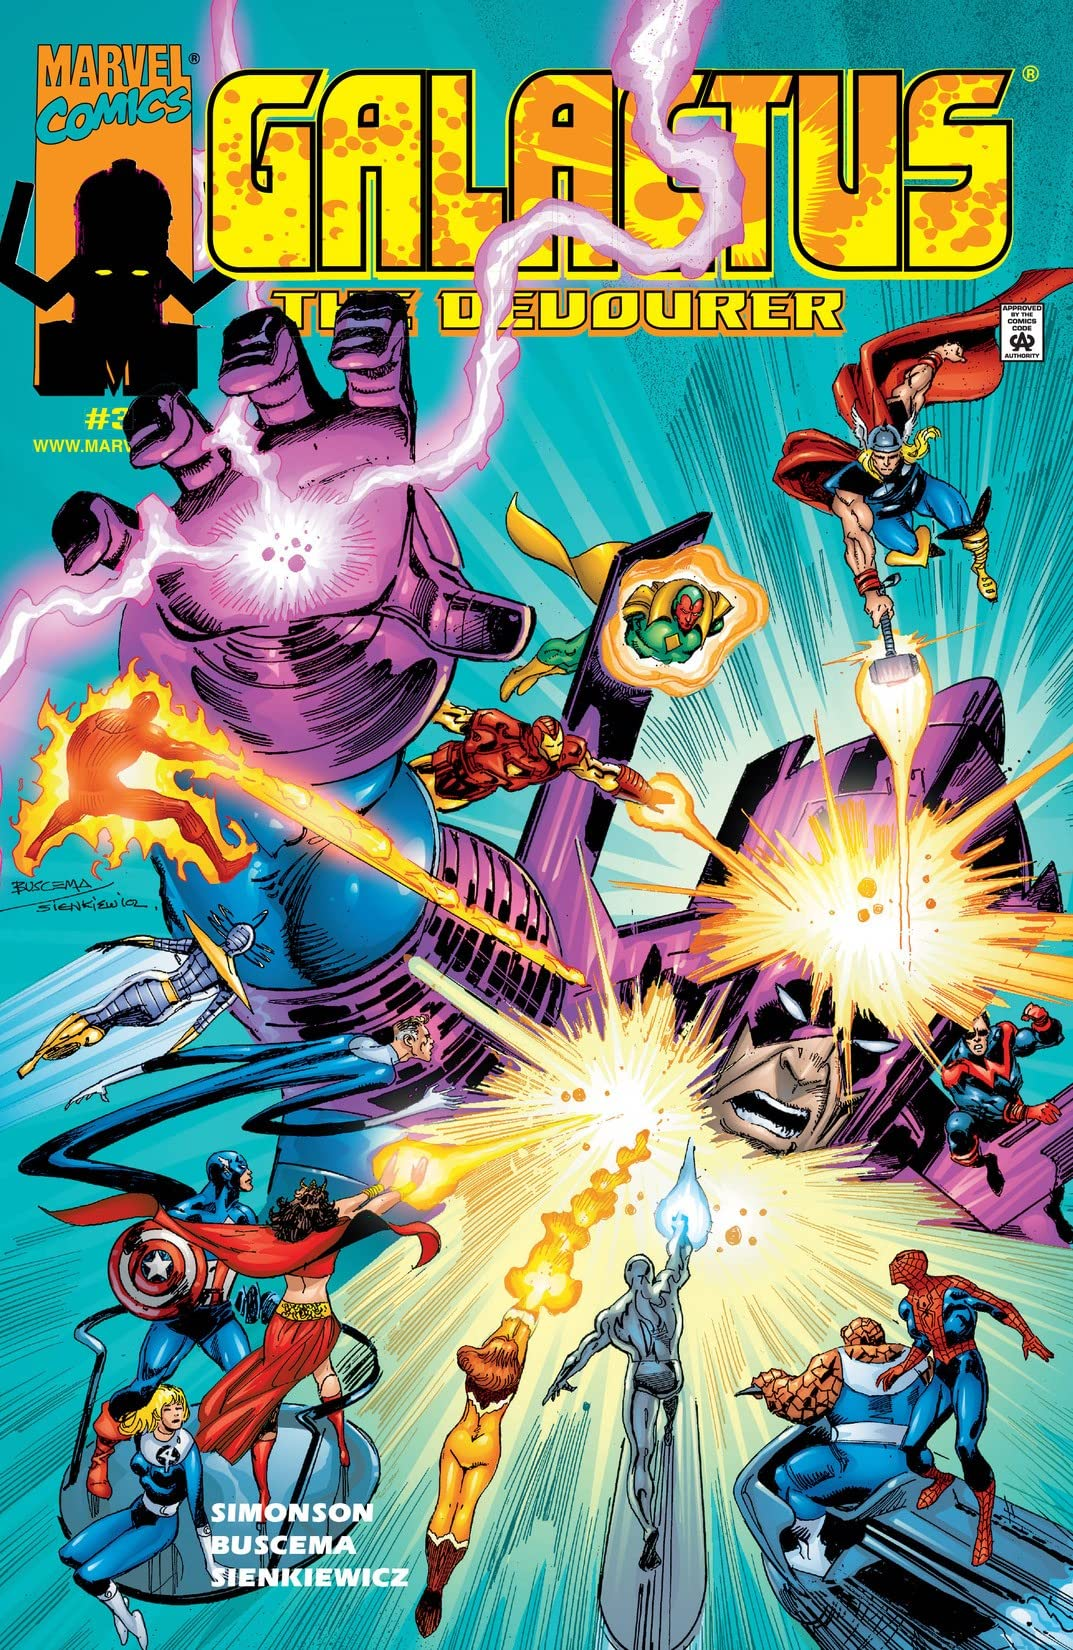 Galactus The Devourer (1999) #3 (of 6)